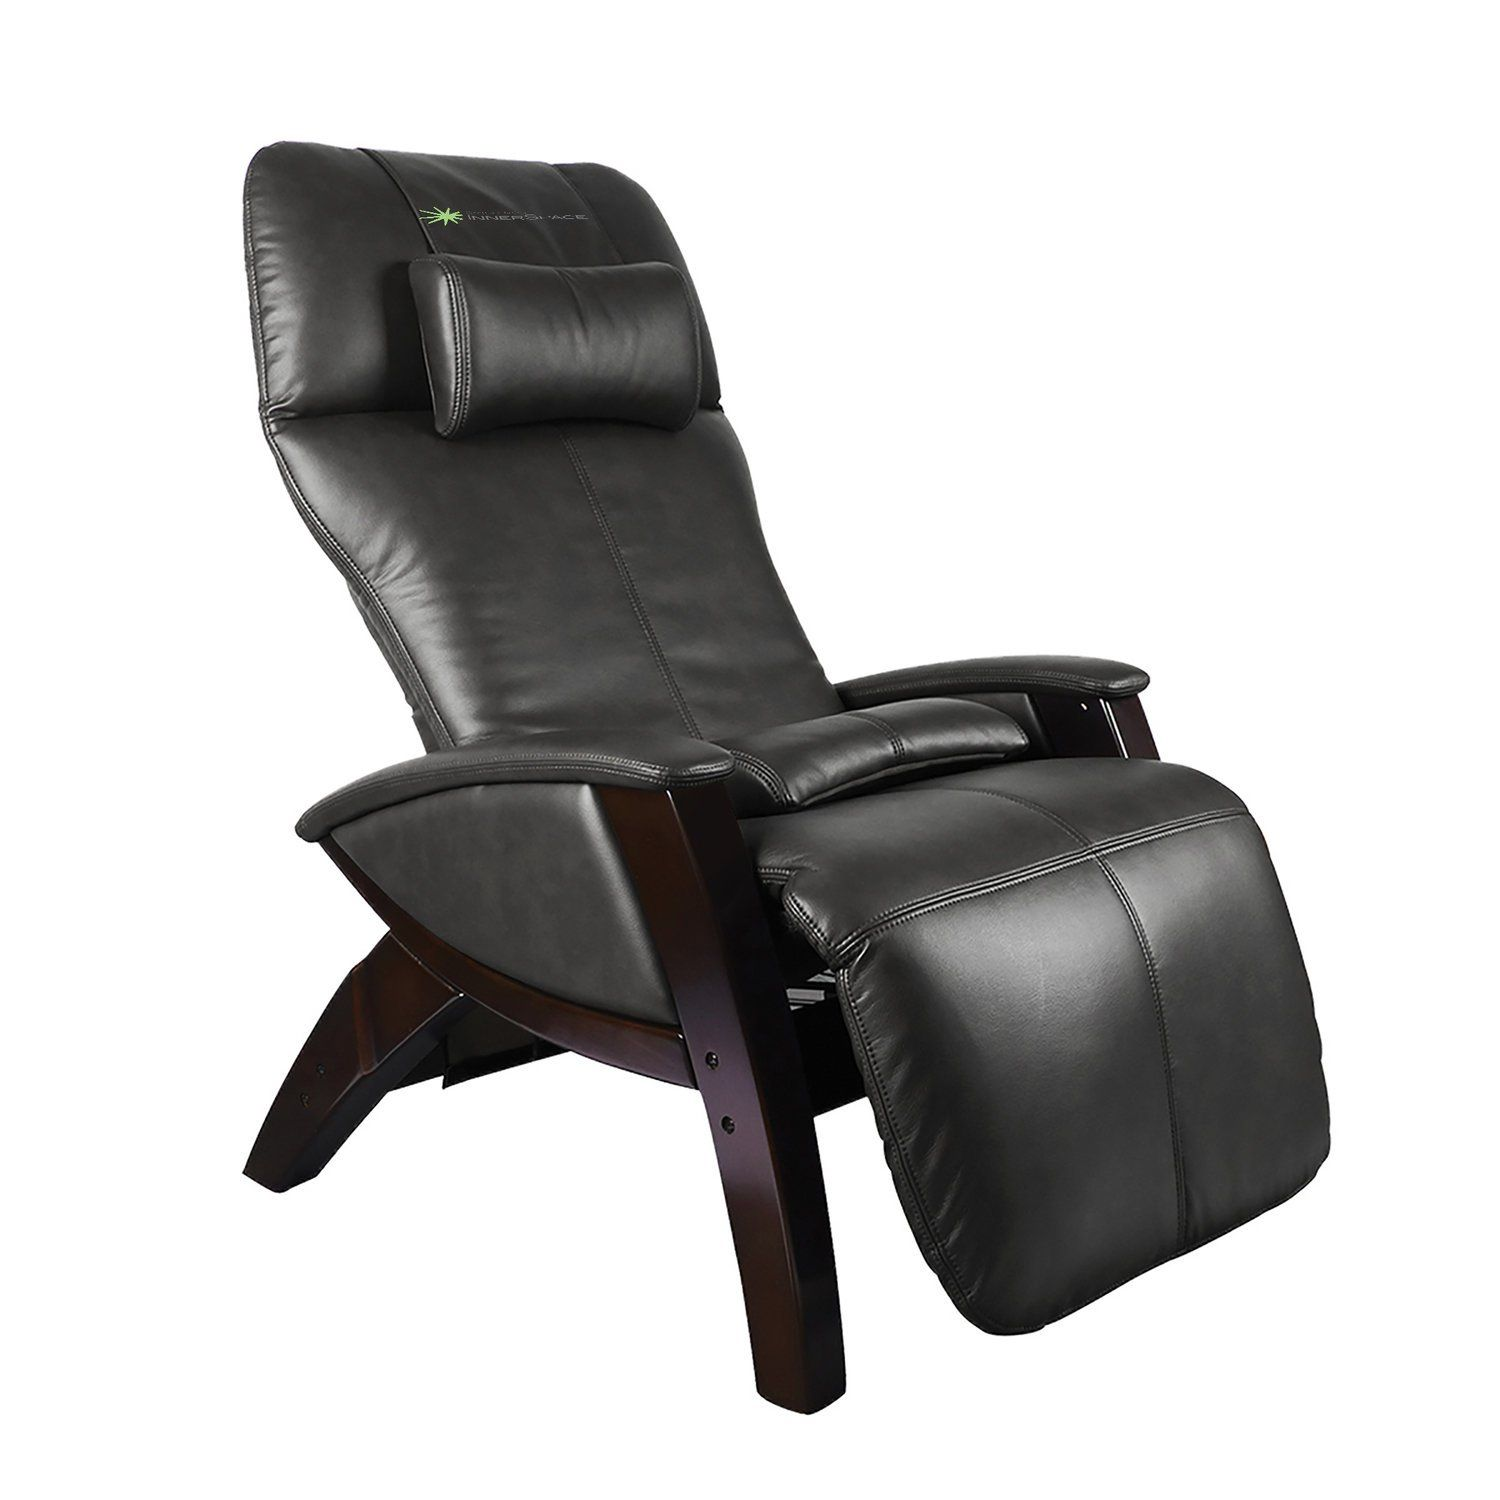 Innerspace Zero Gravity Chair Zero Gravity Recliner Best Recliner Chair Zero Gravity Chair